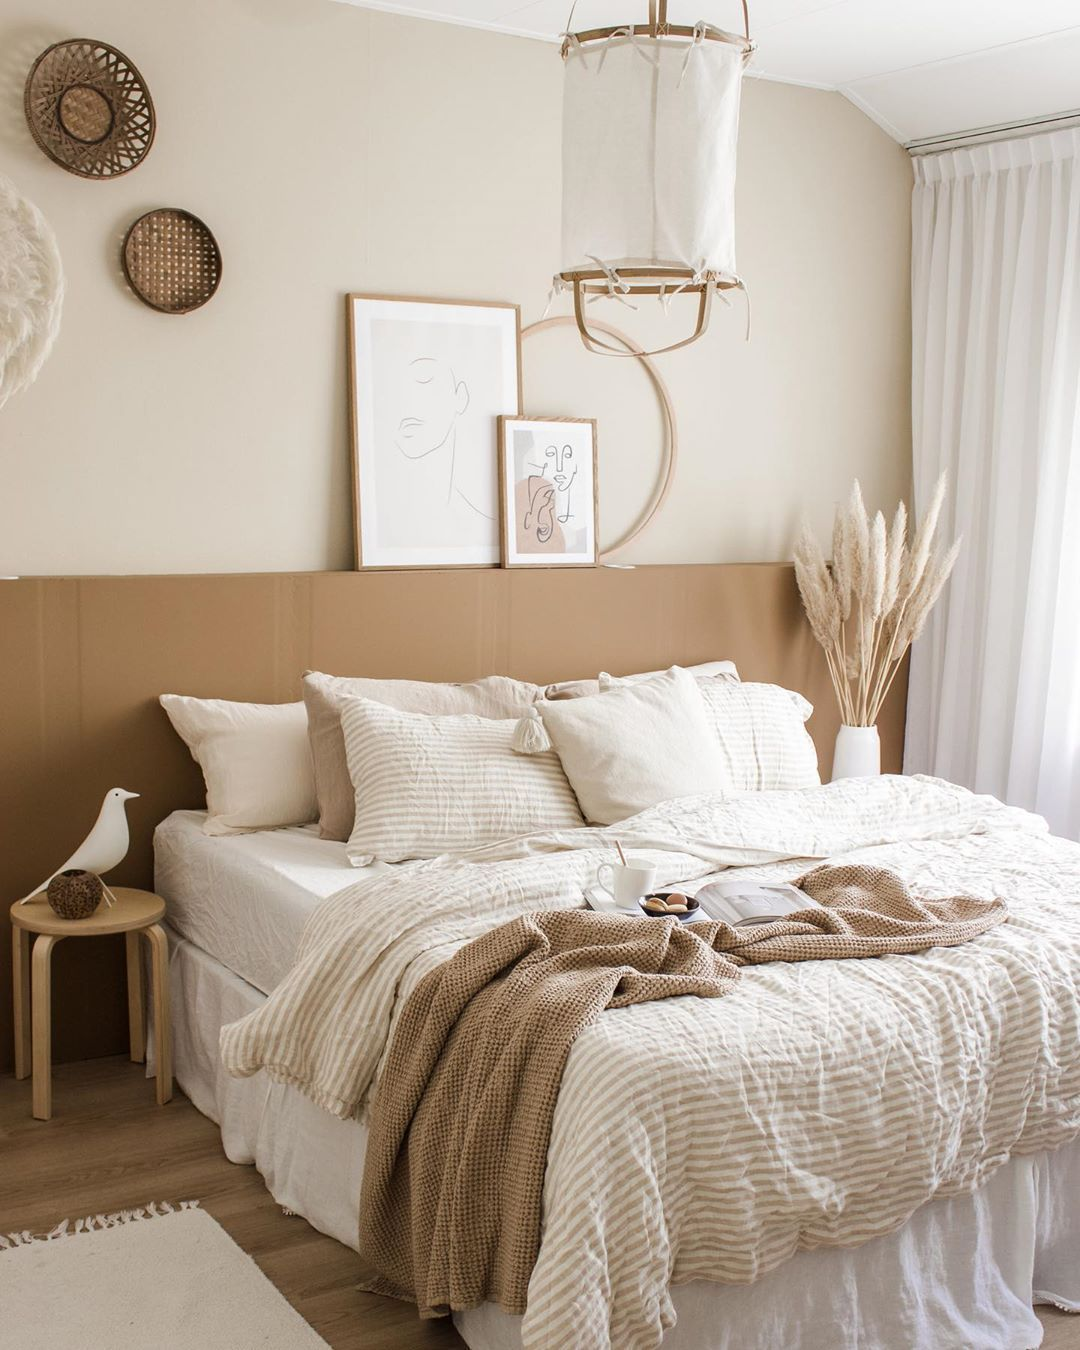 Neutral Beige Bedroom Aesthetics are Perfect for t